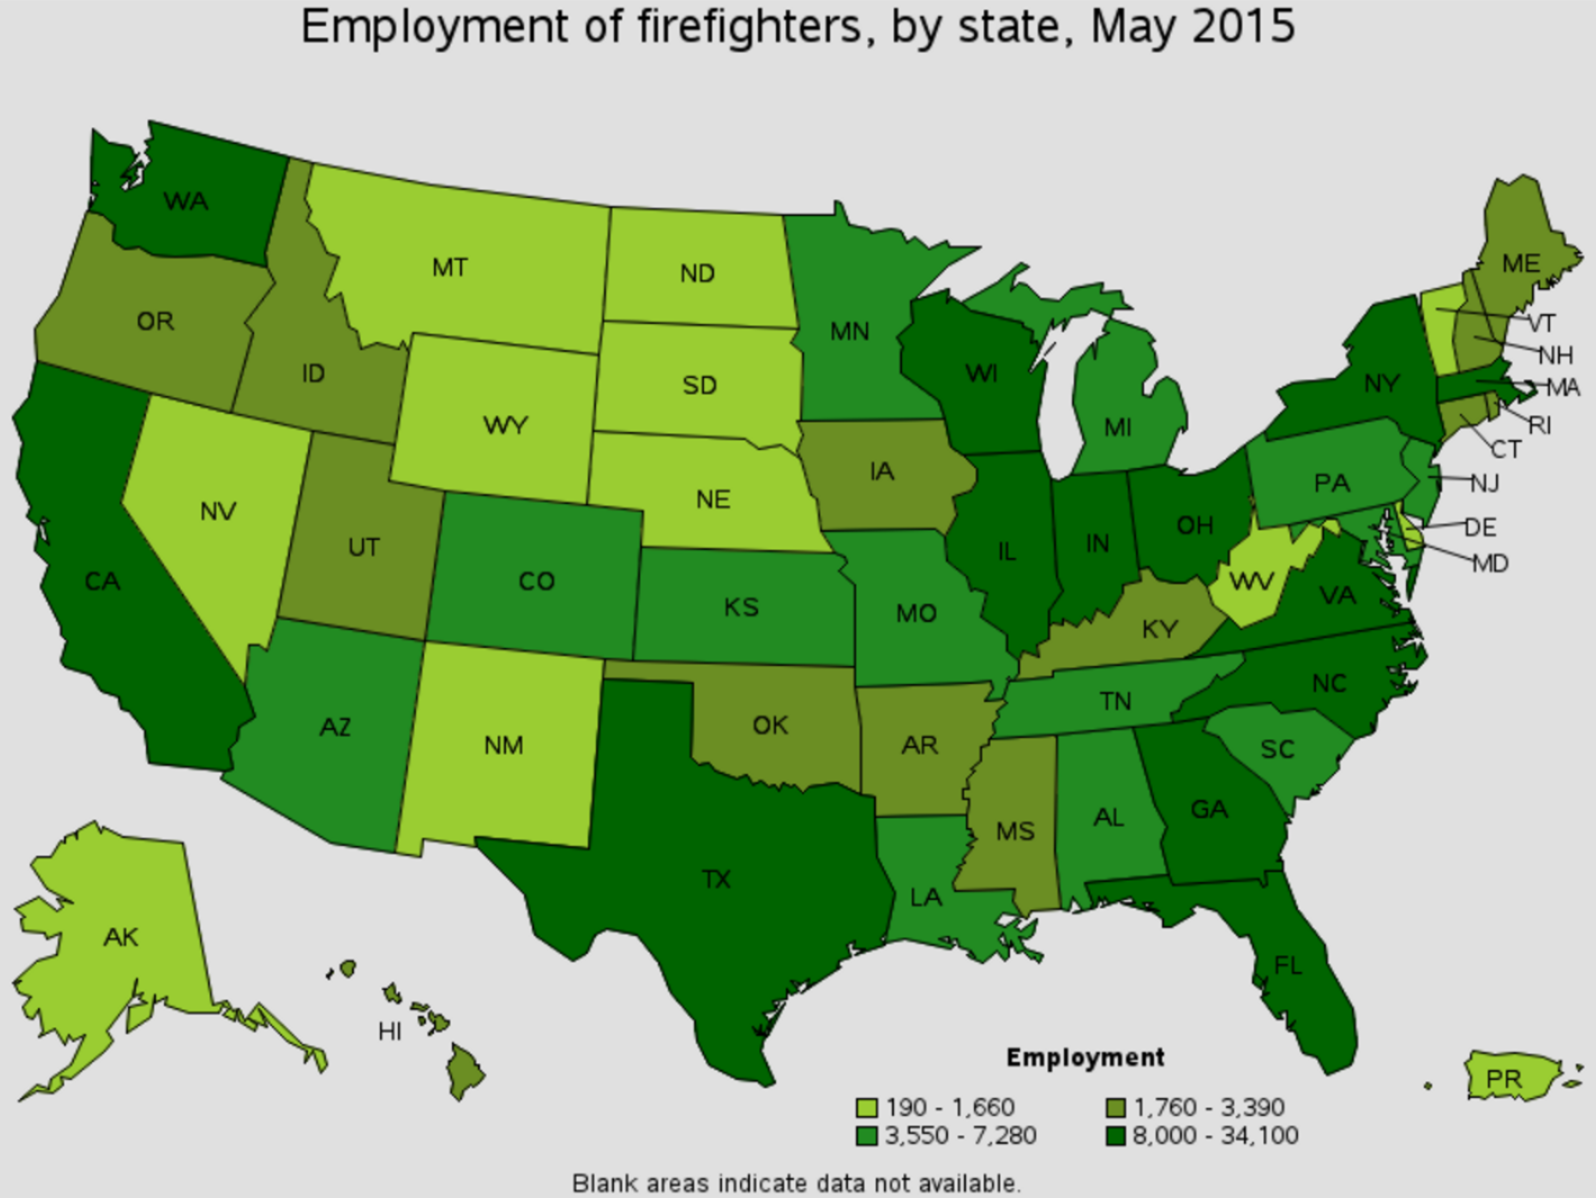 firefighter job outlook by state Green Bay Wisconsin